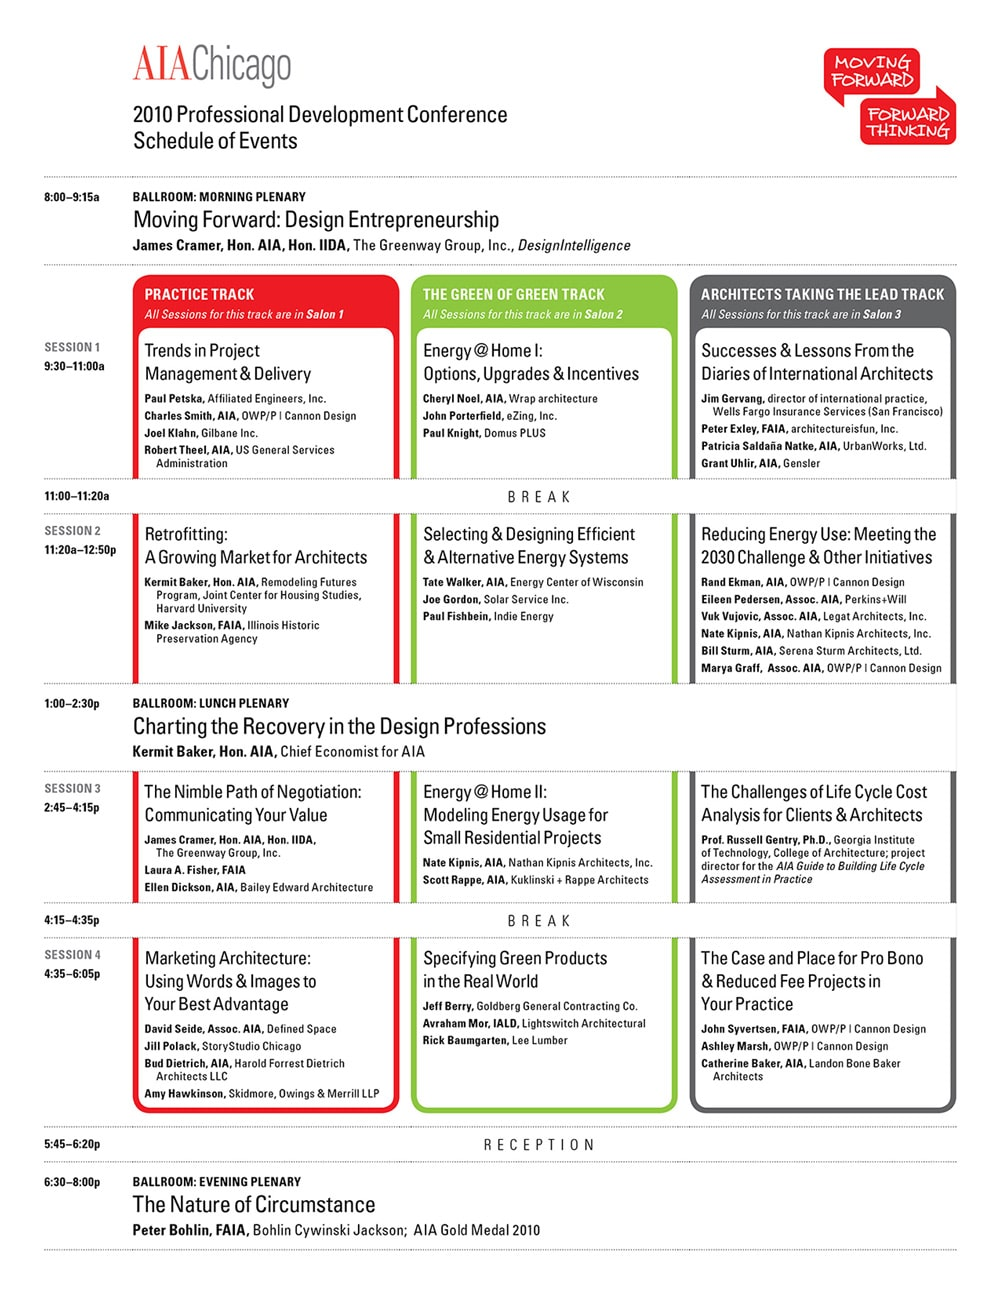 AIA Chicago : Moving Forward Forward Thinking Conference Schedule